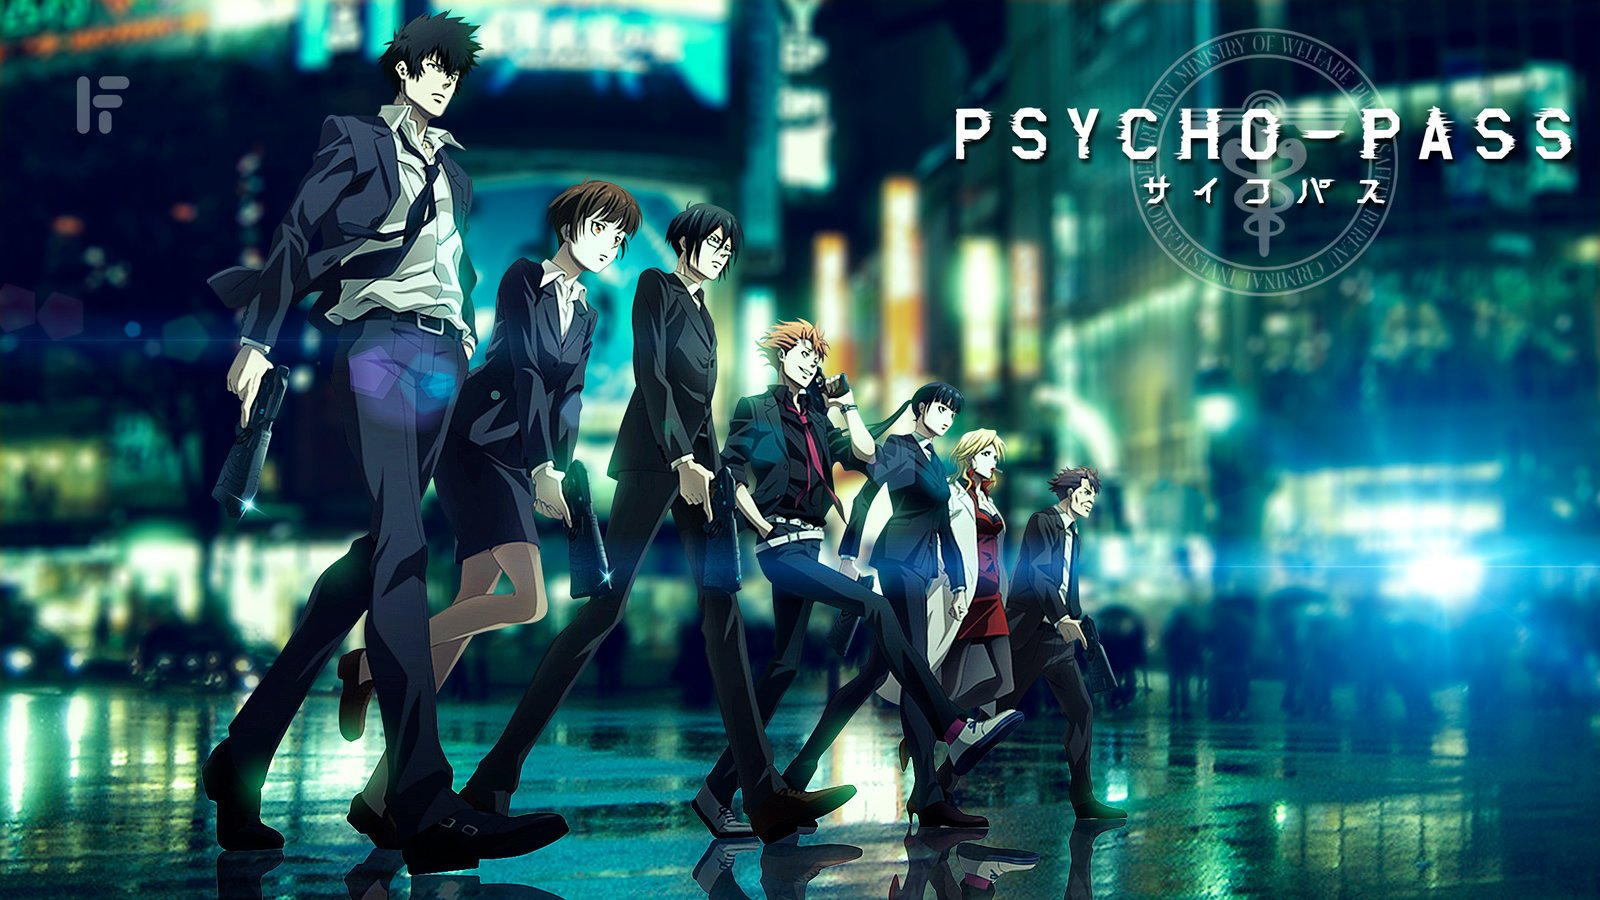 Psycho Pass Wallpaper Hd Wallpapersafari